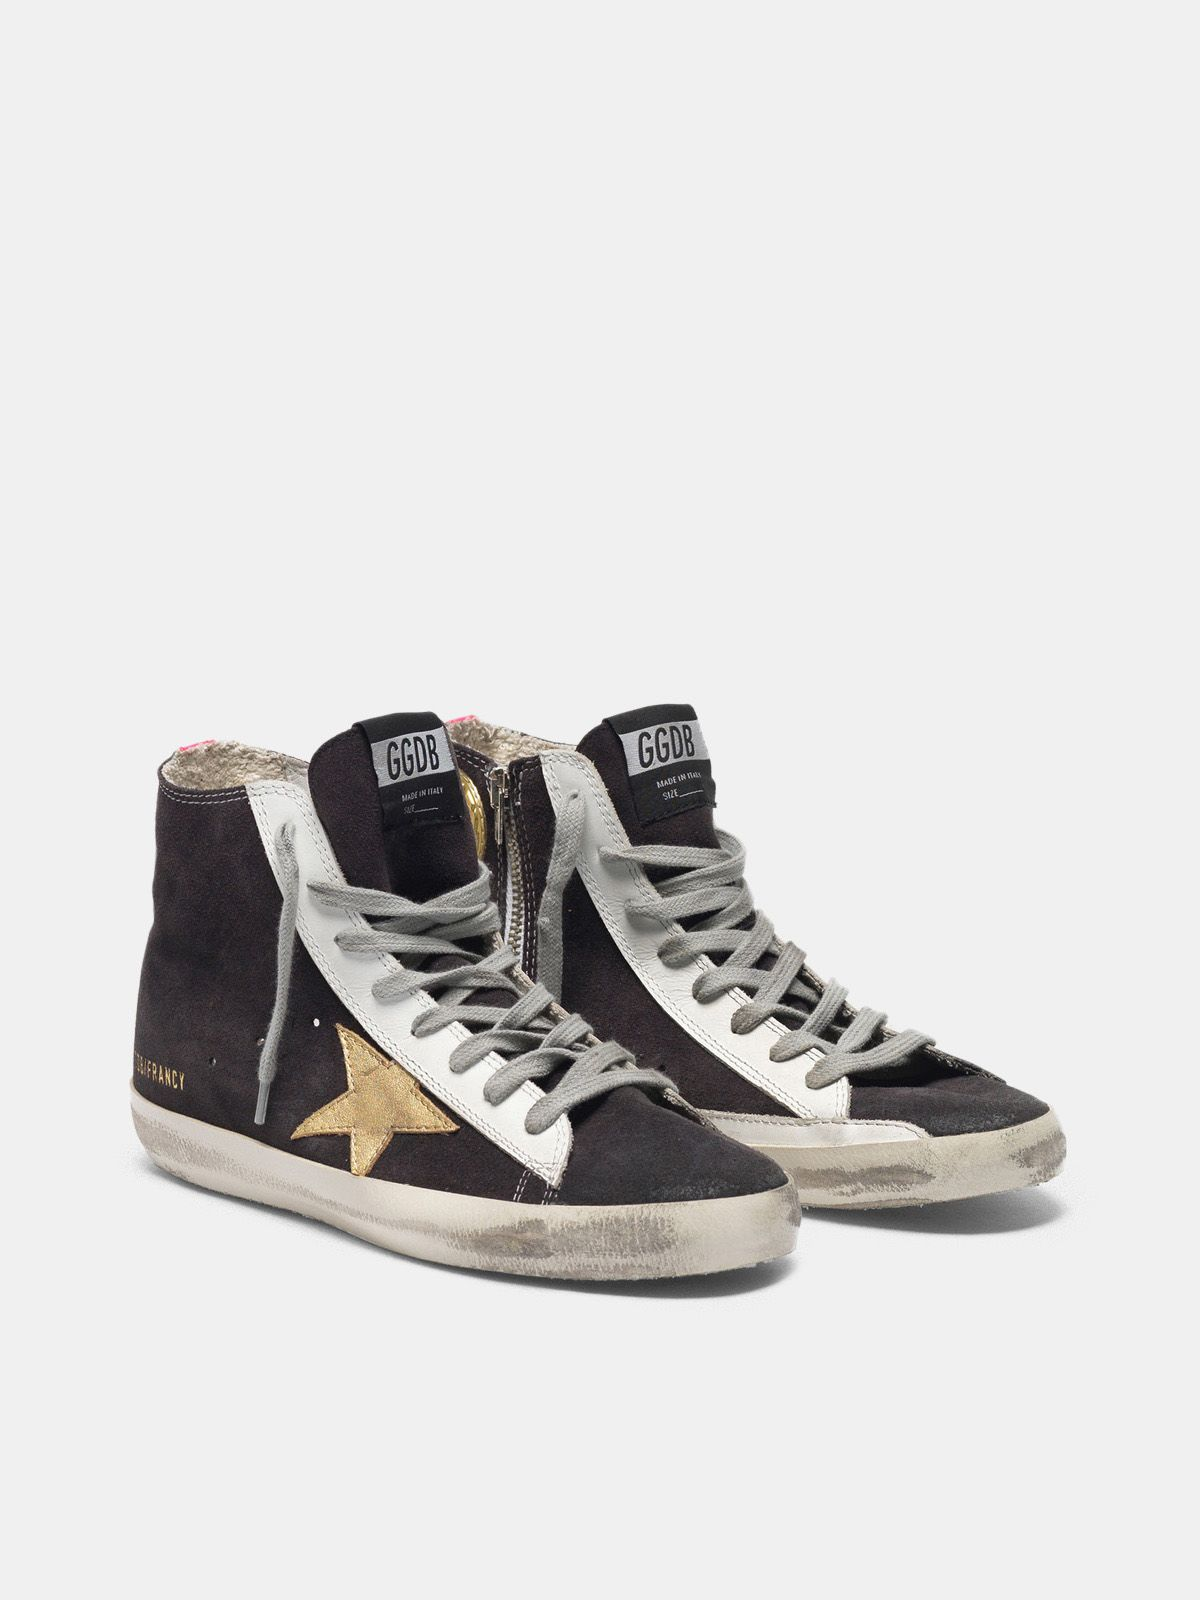 Golden Goose - Francy sneakers in suede with gold star and fuchsia insert on the back in